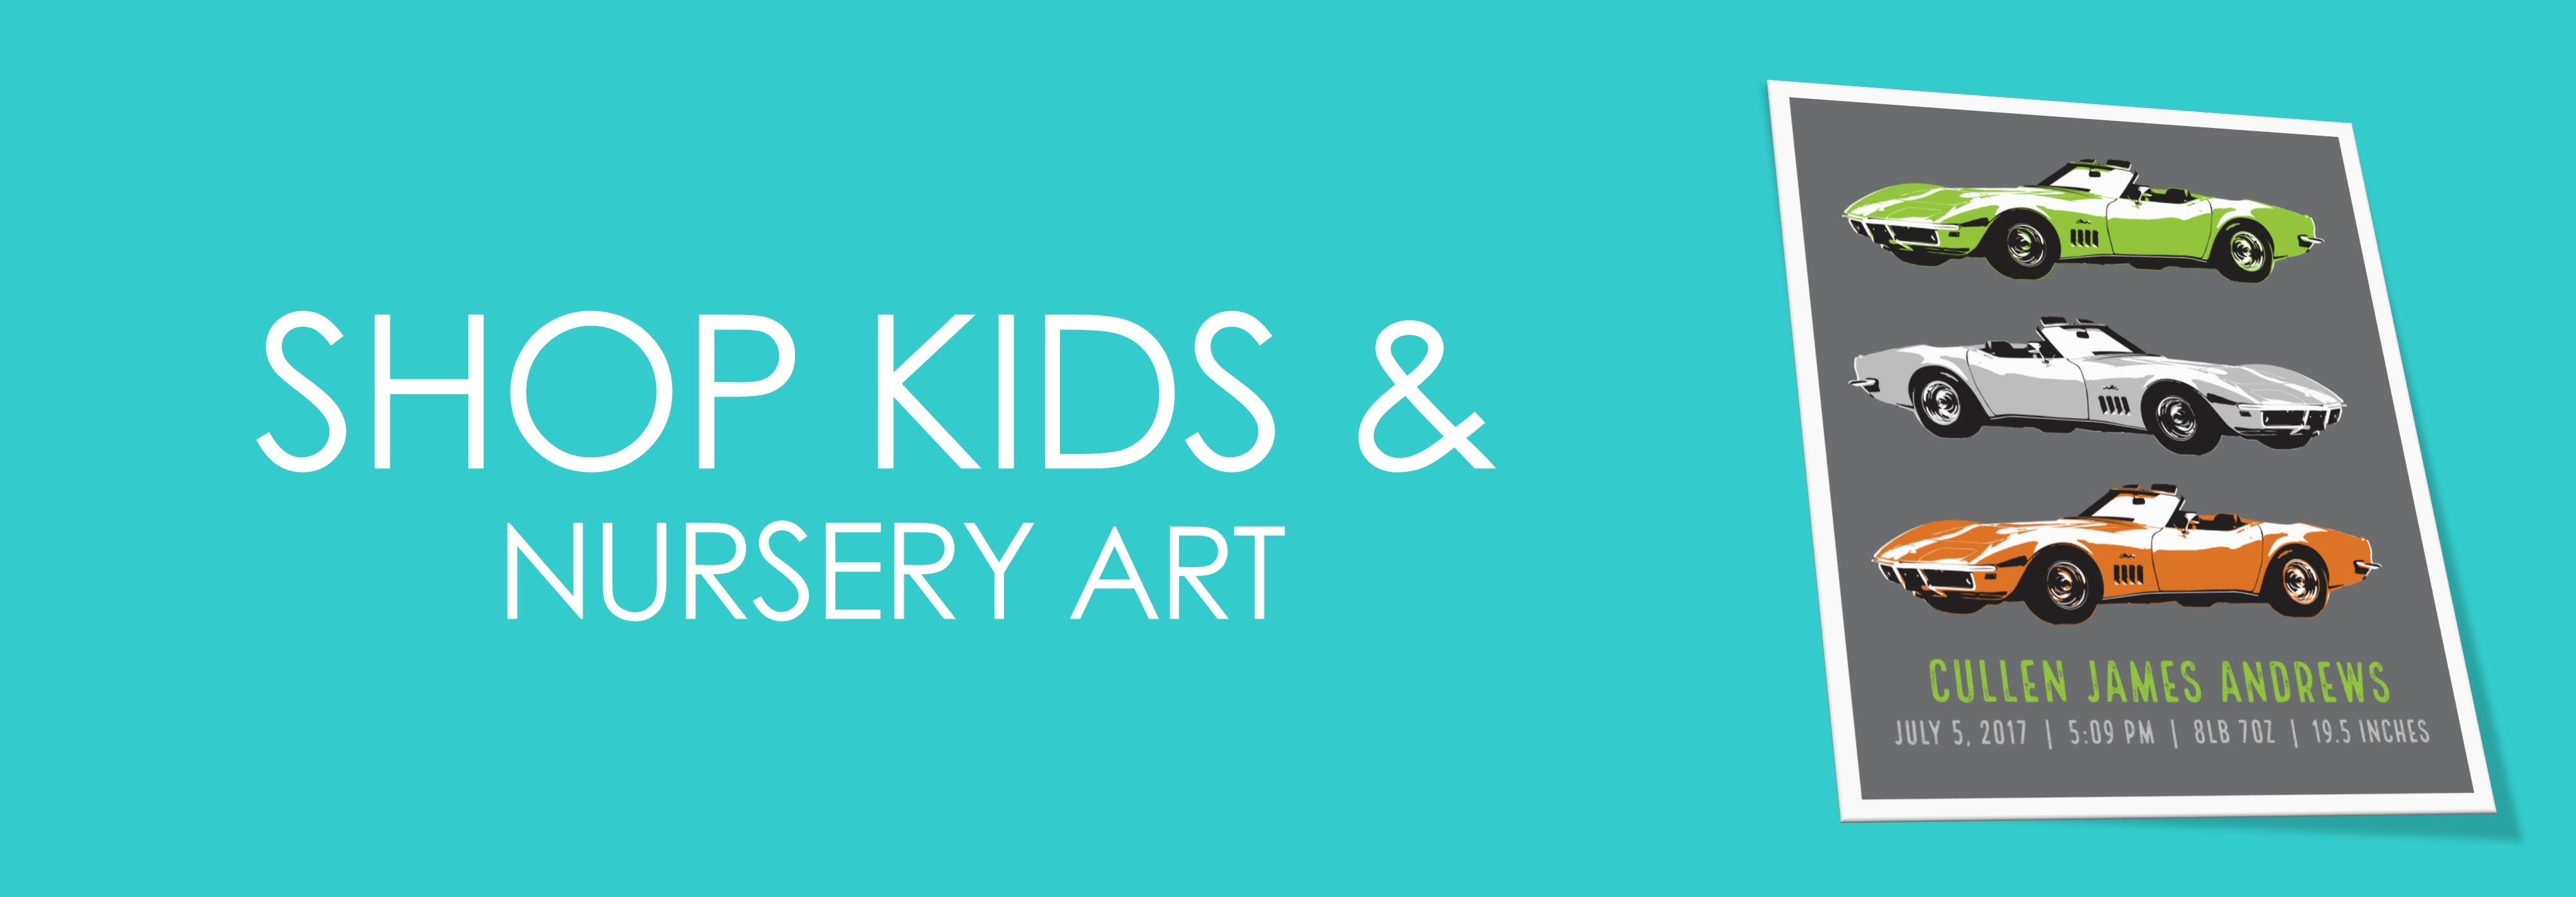 Shop Kids & Nursery Art